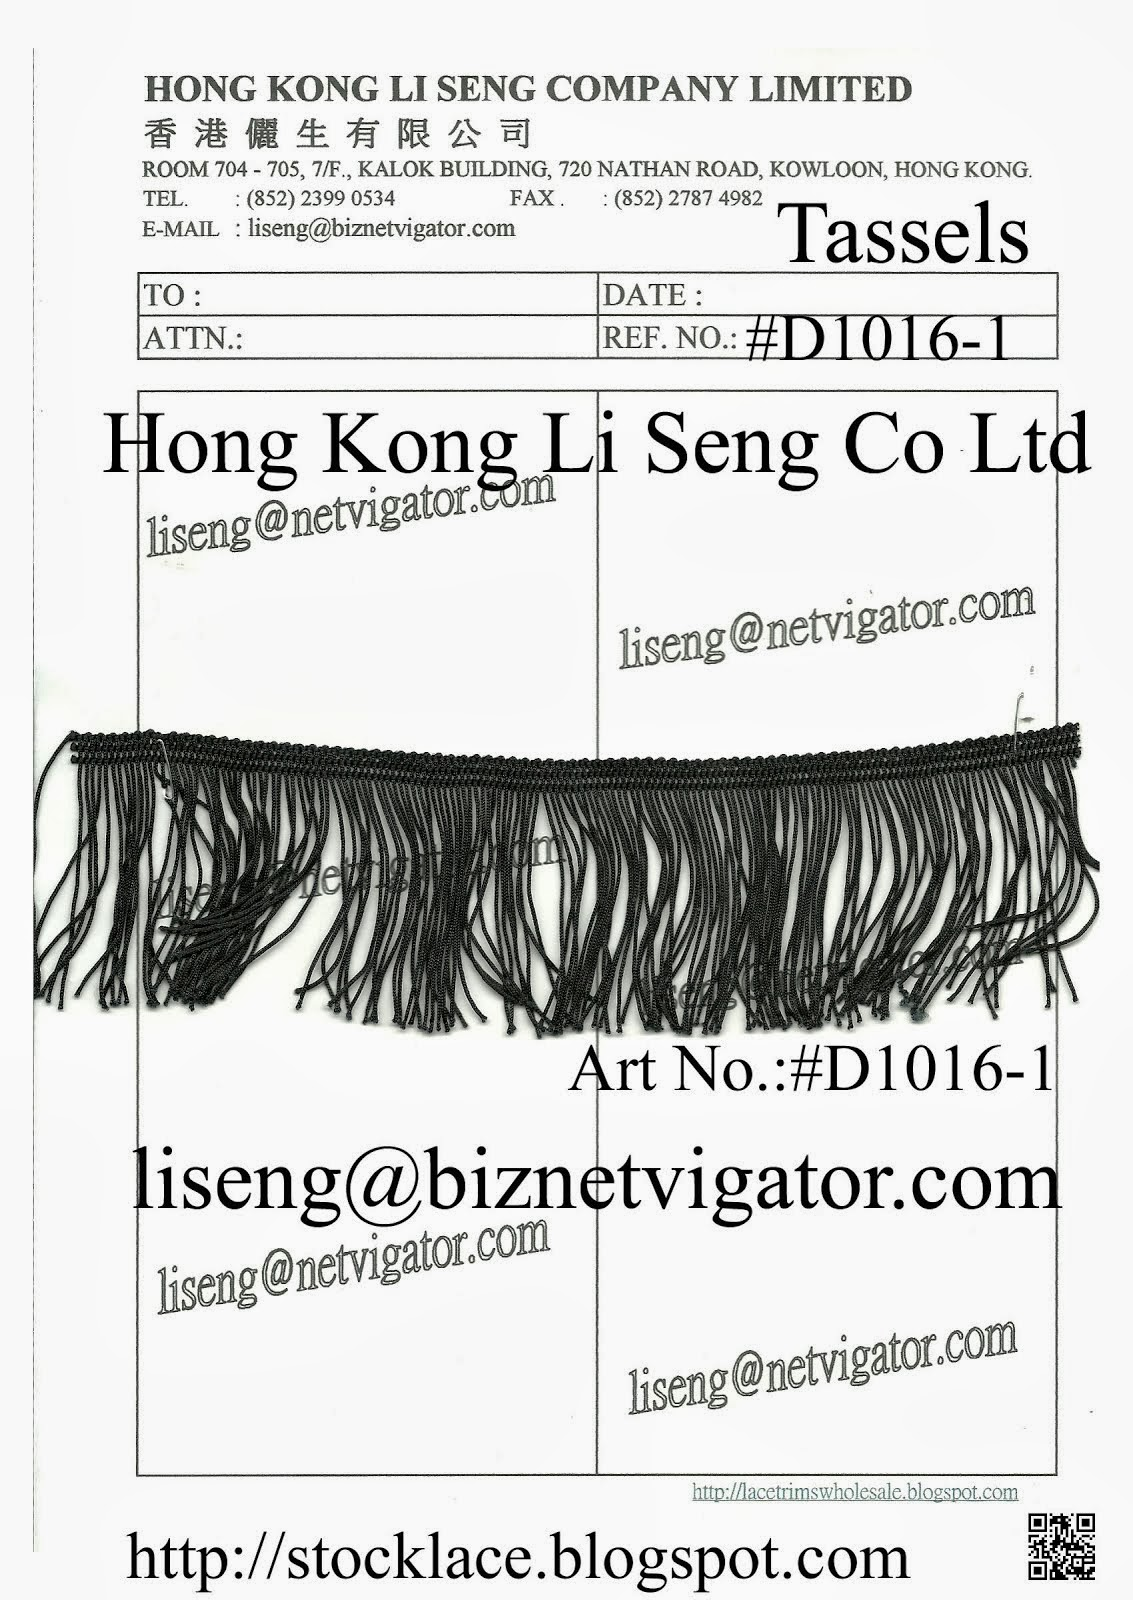 Black Tassels Manufacturer Wholesale and Supplier - Hong Kong Li Seng Co Ltd